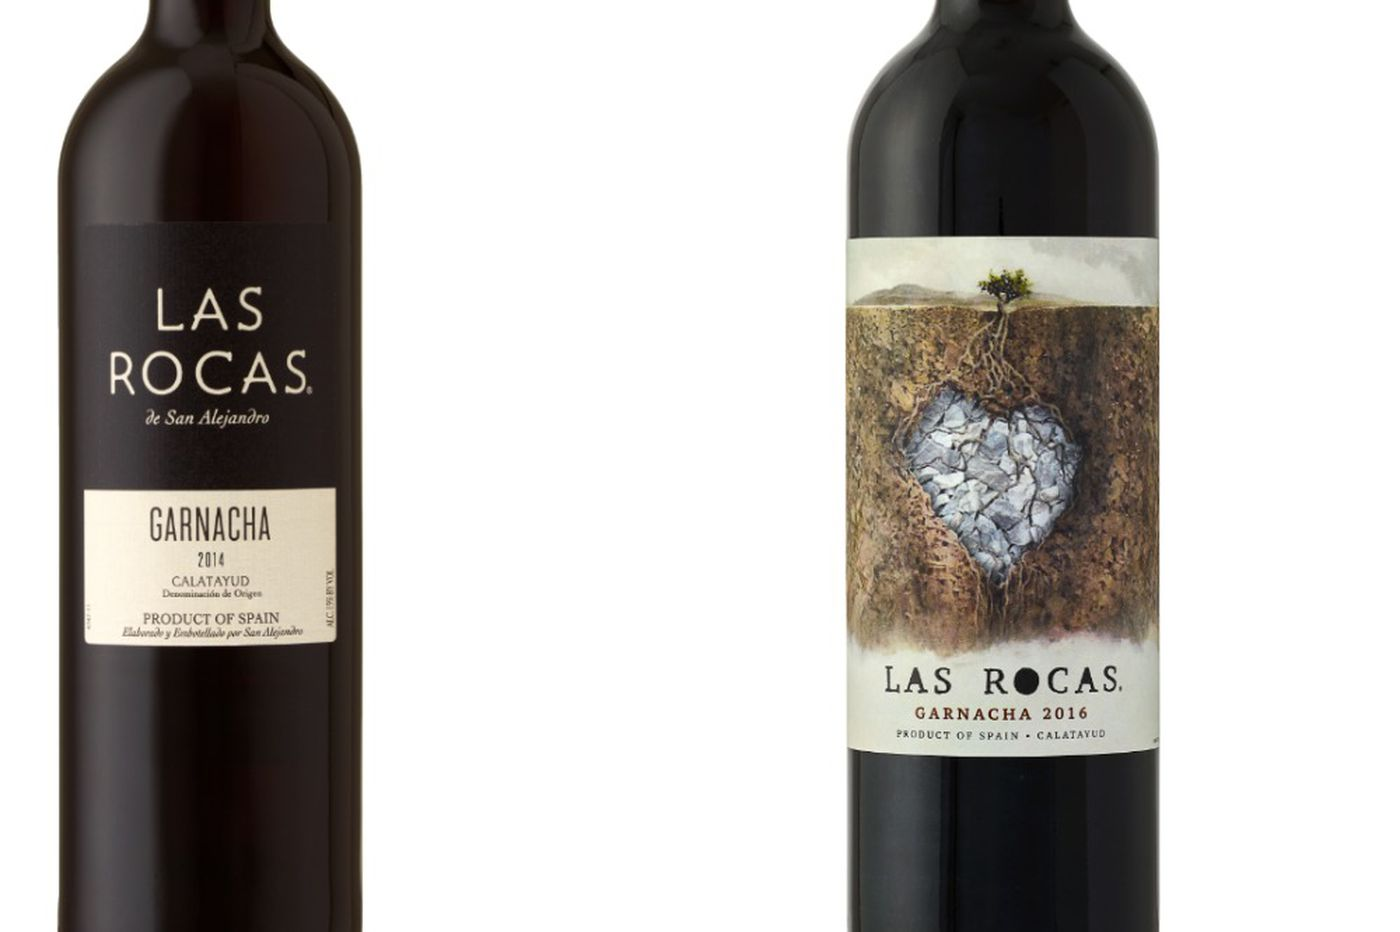 At less than $10, this Spanish wine pours with robust flavor